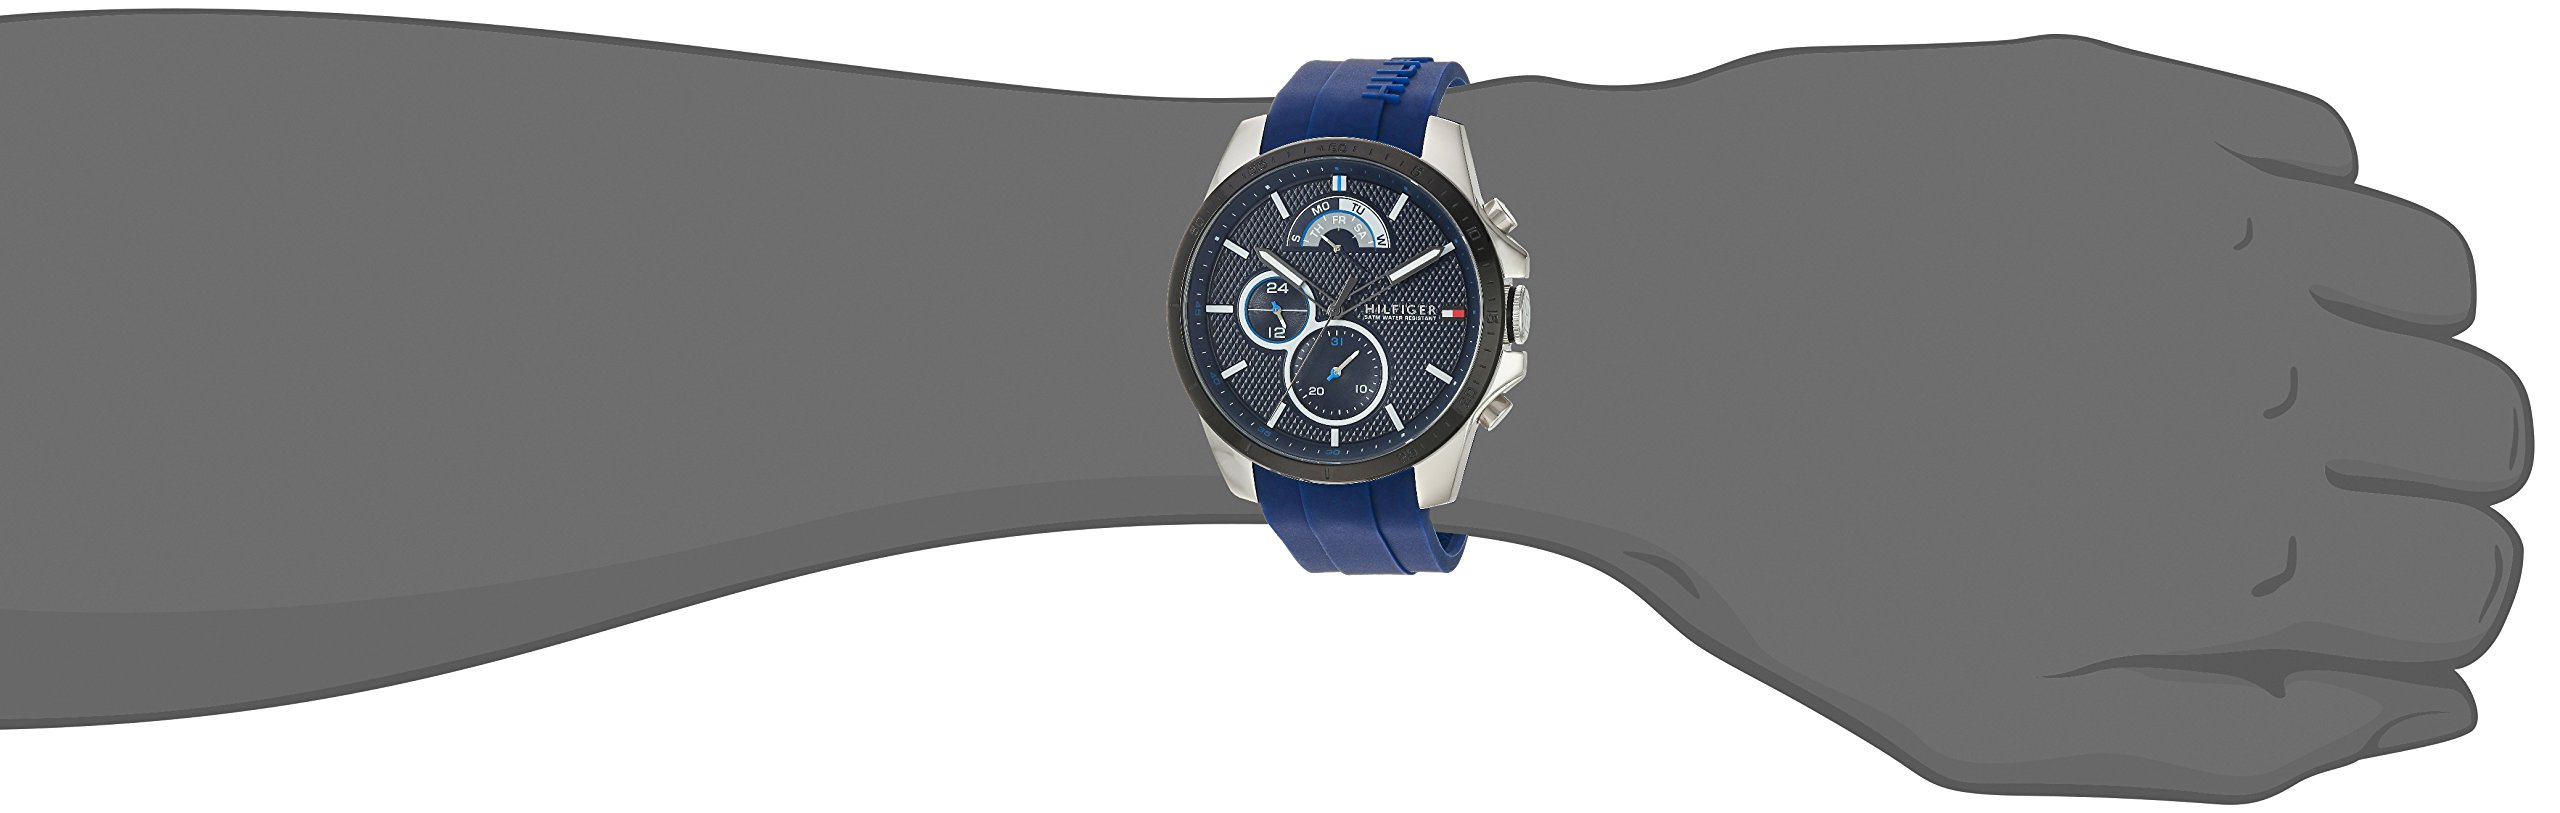 Tommy Hilfiger Men's 'COOL SPORT' Quartz Stainless Steel and Silicone Casual Watch, Color:Blue (Model: 1791350) by Tommy Hilfiger (Image #2)